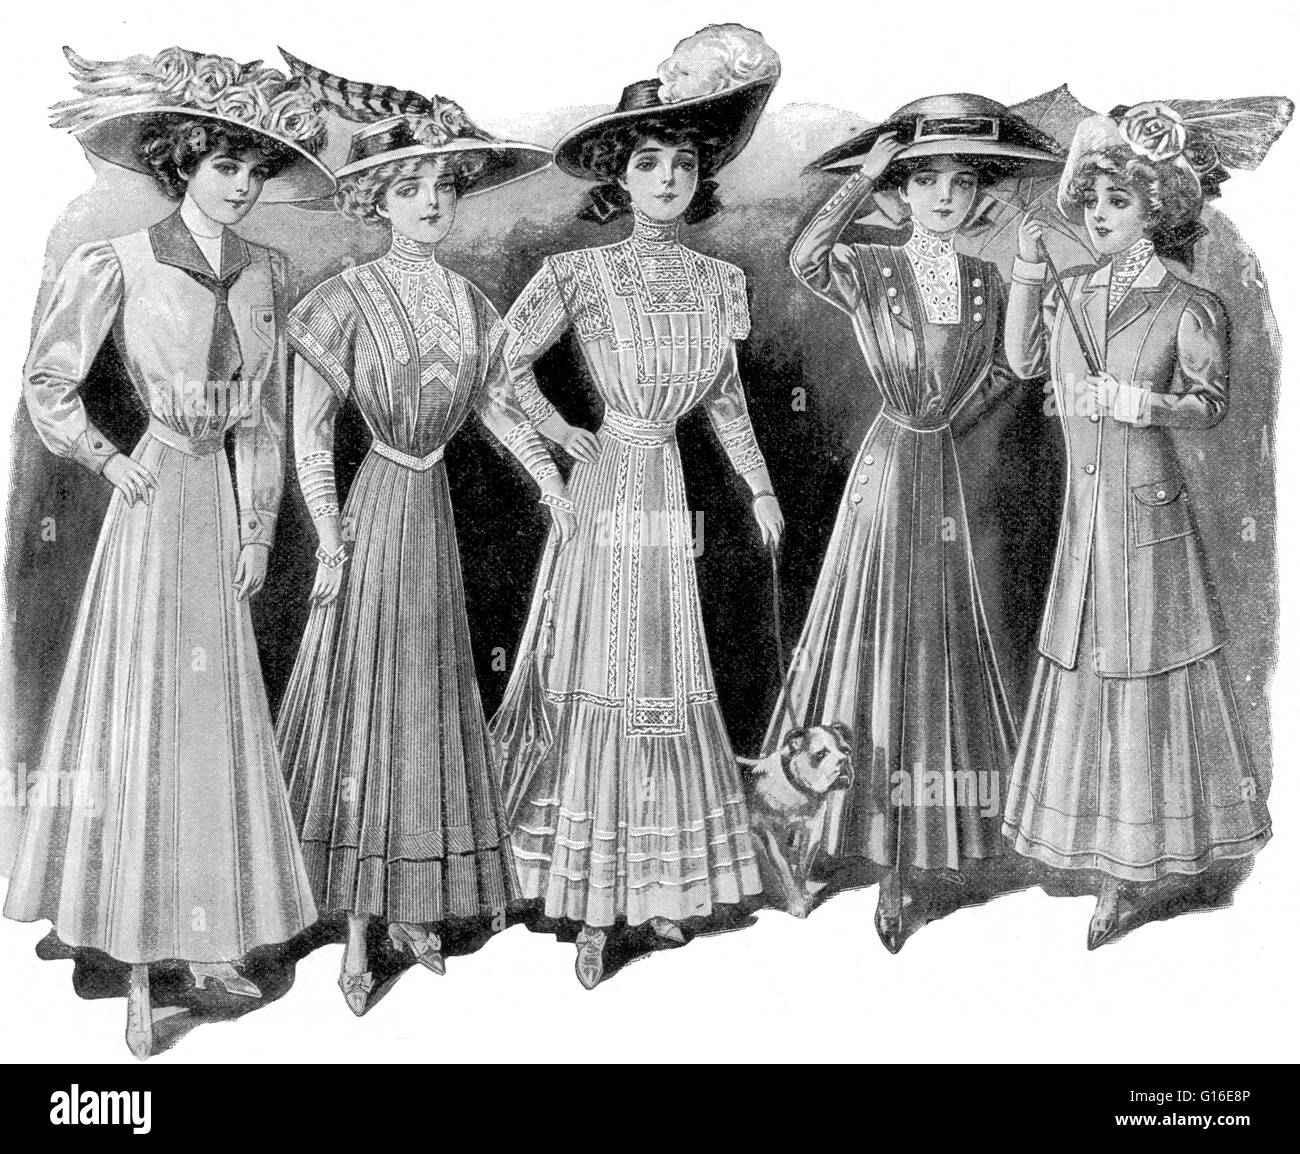 Entitled: 'Ready-made women's fashion, 1900's.' Fashion is a distinctive and often habitual trend - Stock Image